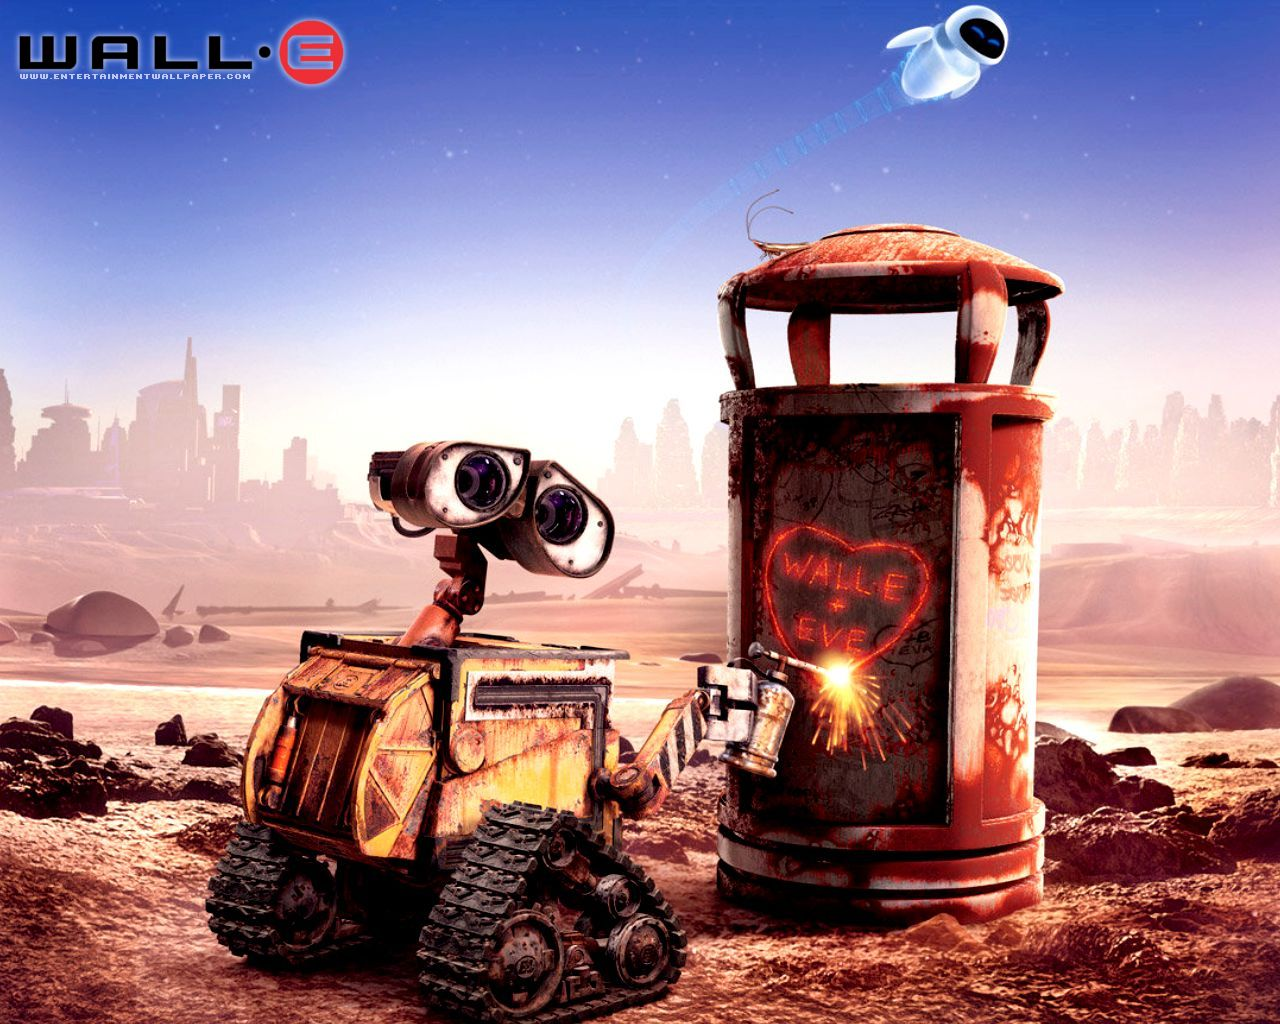 wallpaper: wall-e wallpaper desktop